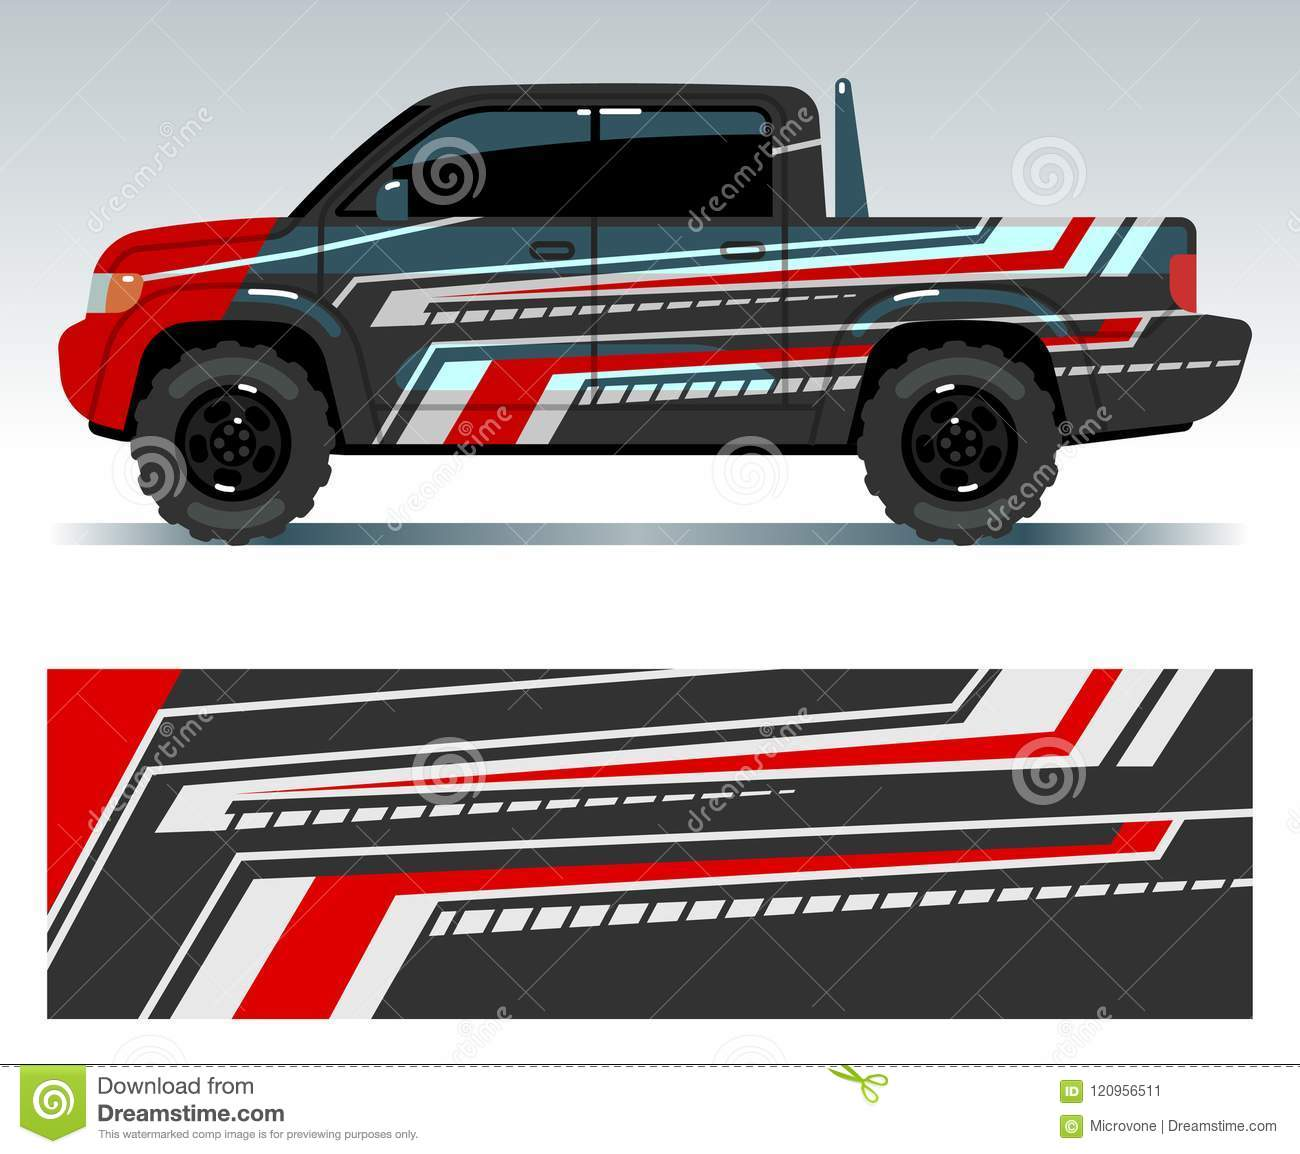 d5990445a51358 Racing car design. Vehicle wrap vinyl graphics with stripes vector  illustration